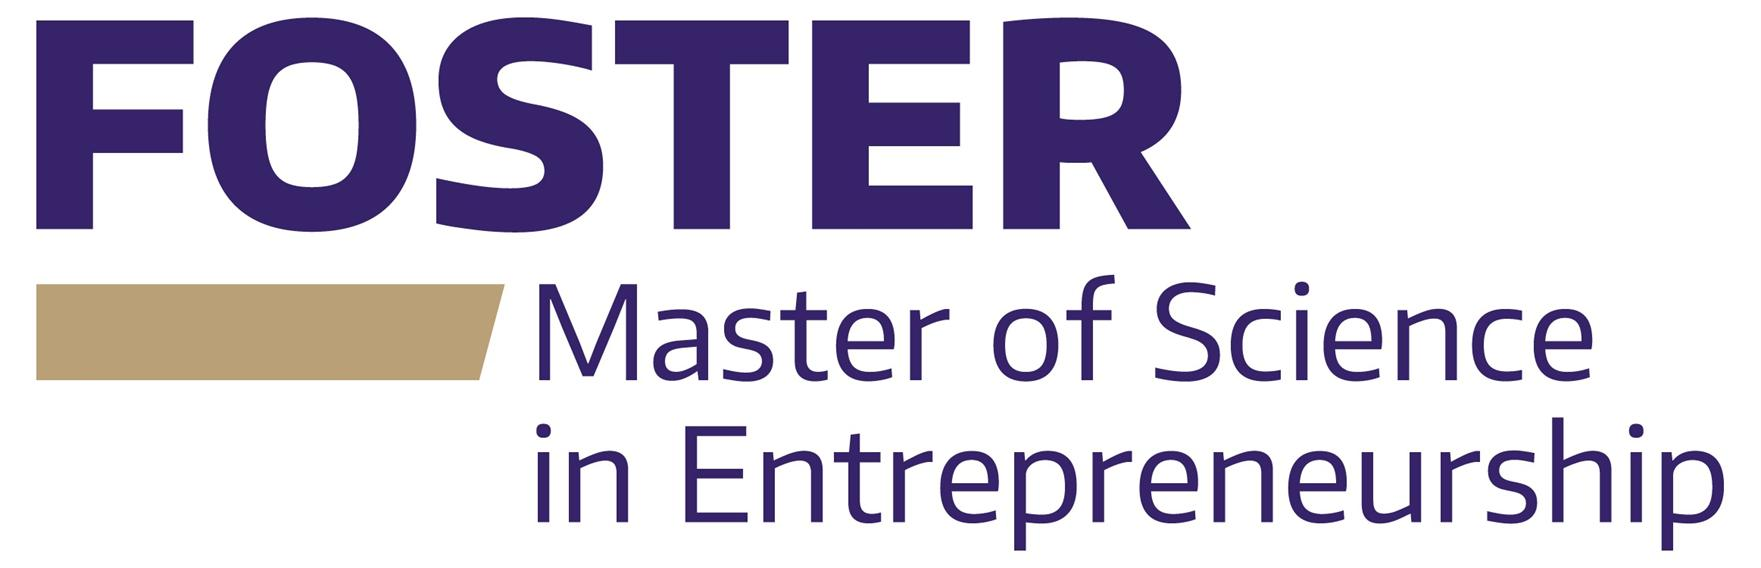 Application Workshop (online) - Master of Science in Entrepreneurship